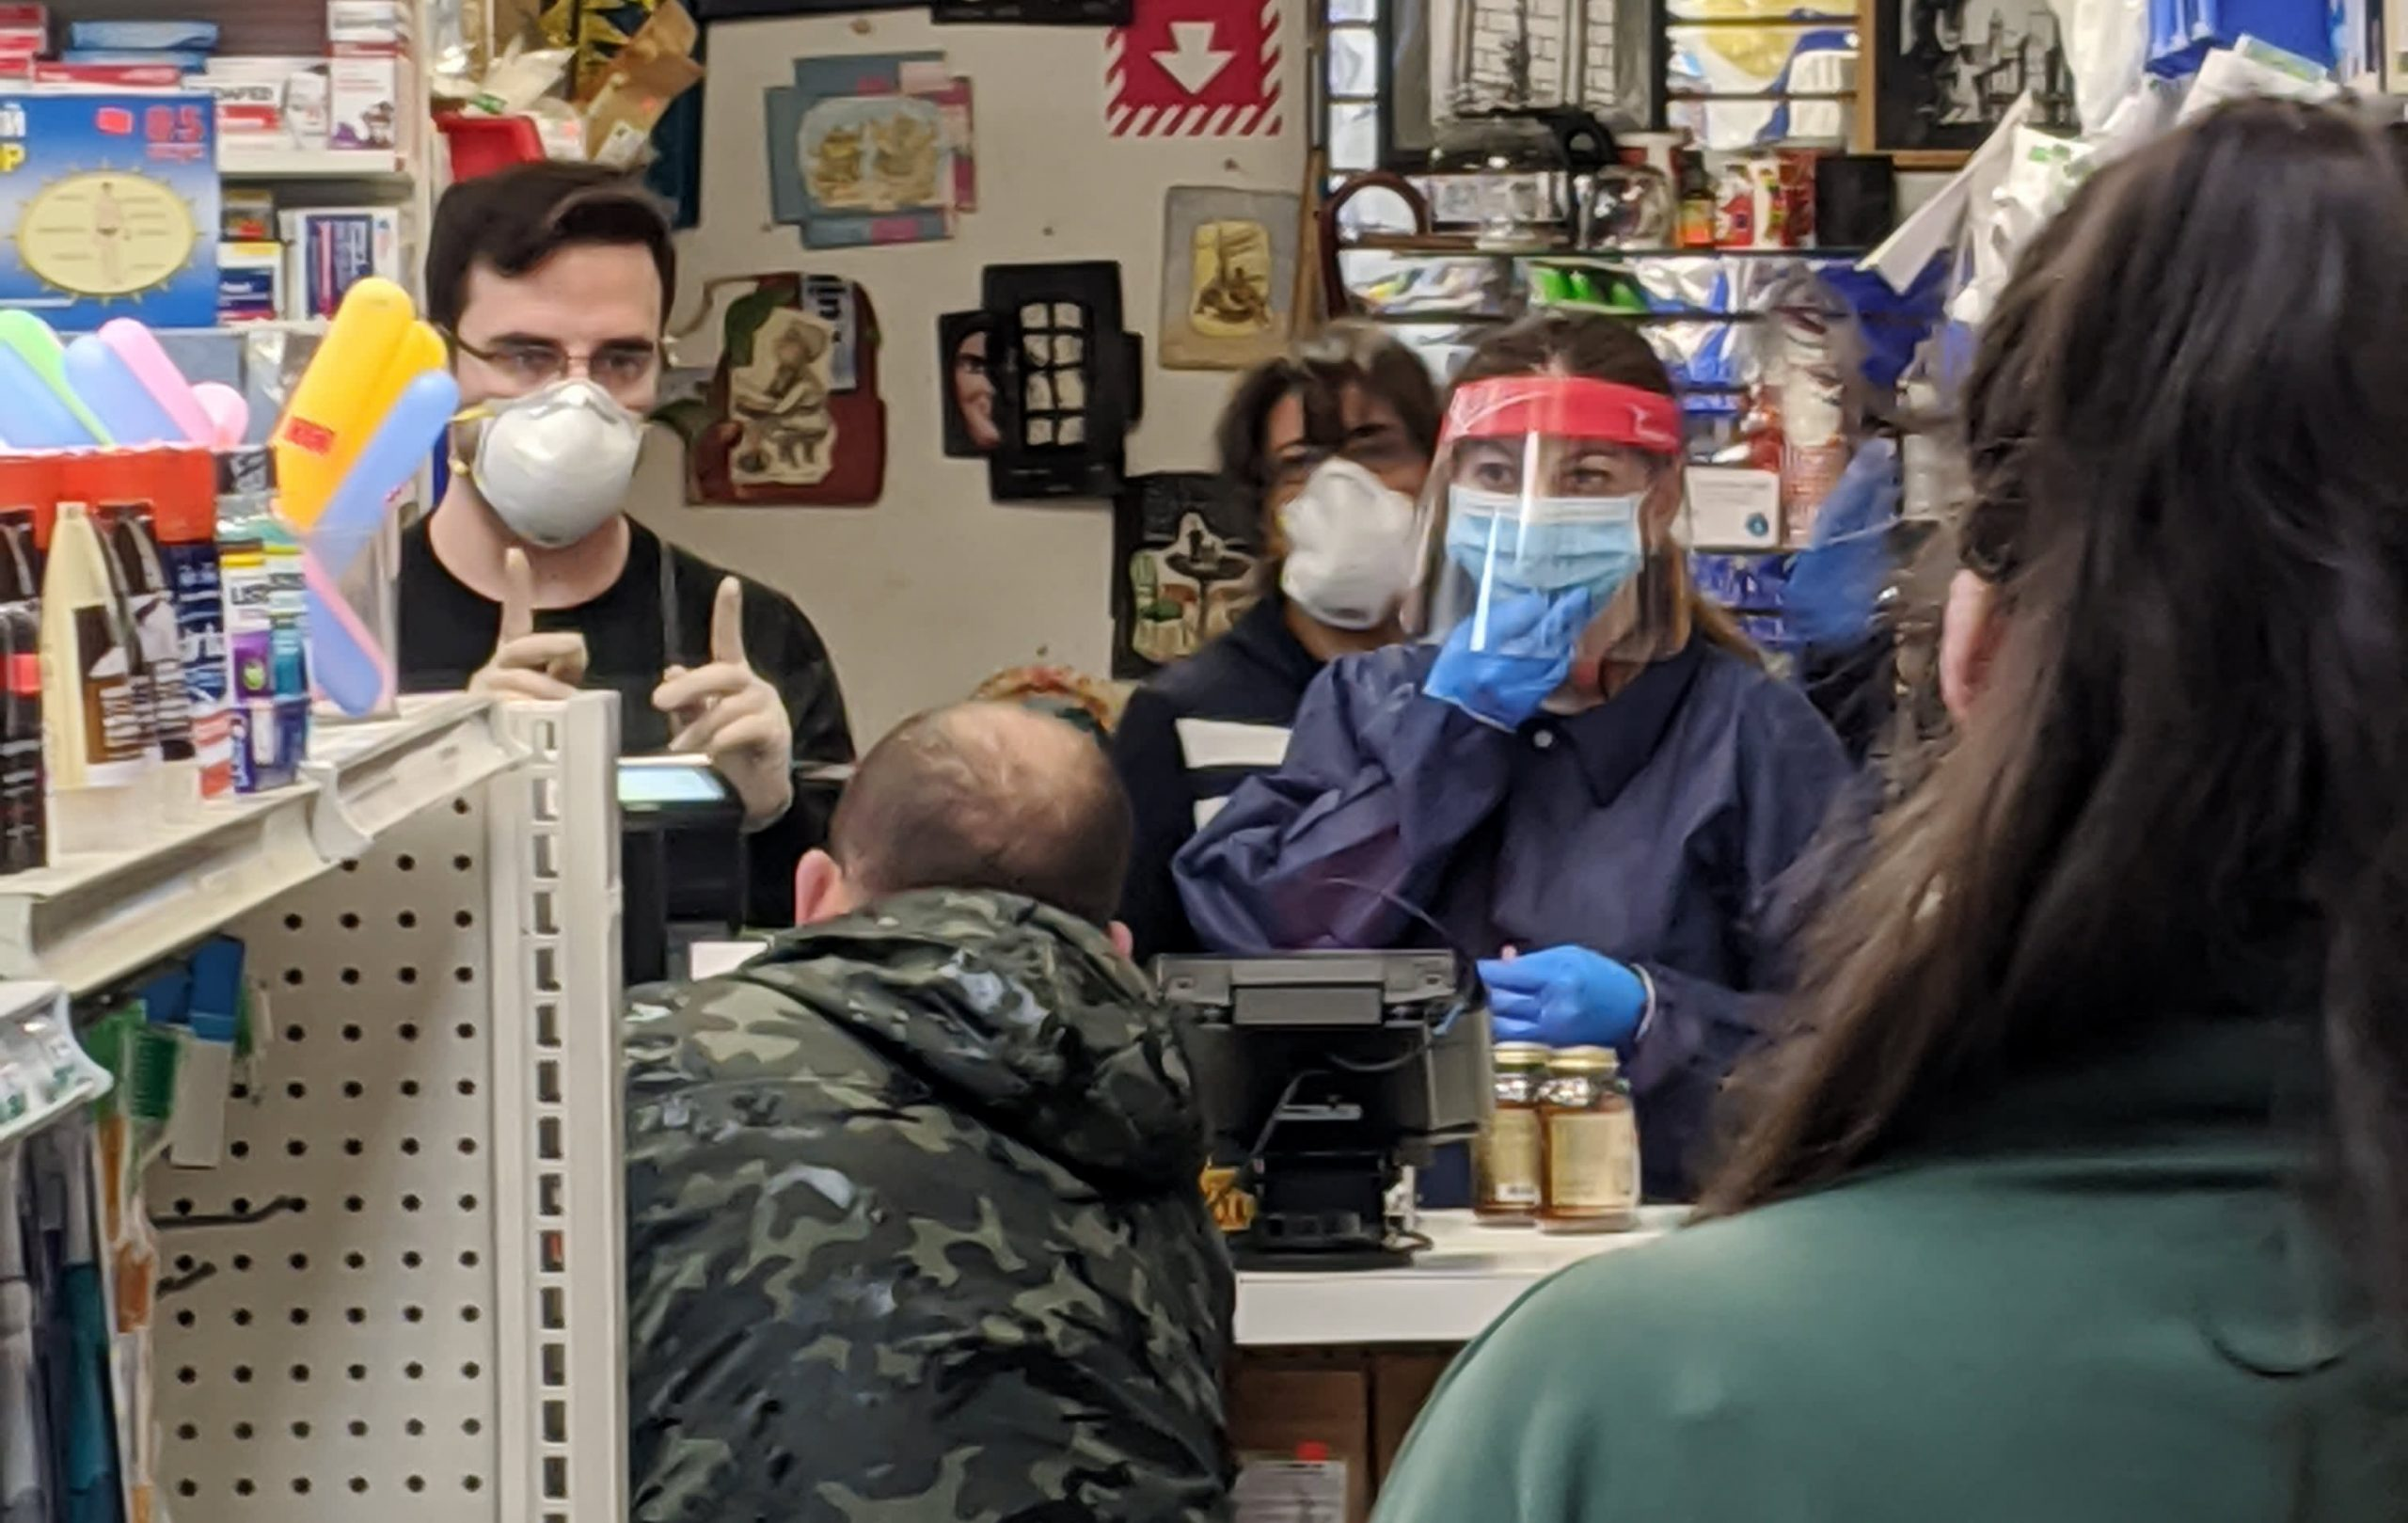 Pharmacies in NYC struggle to meet demand amid supply shortages